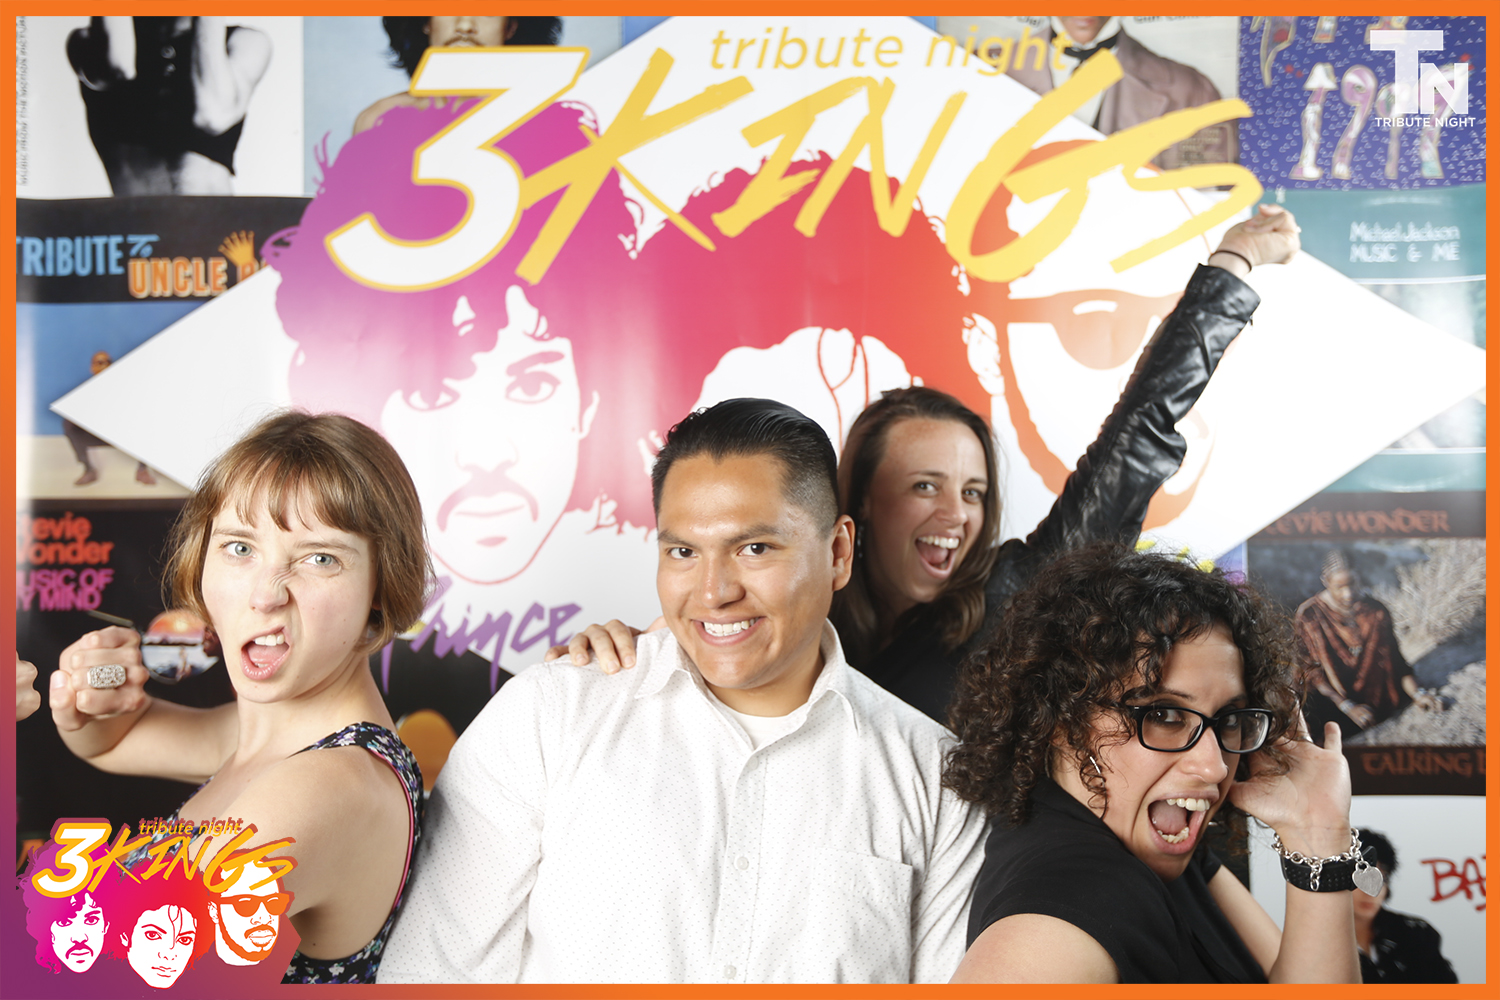 3kings Tribute Night Logo151.jpg